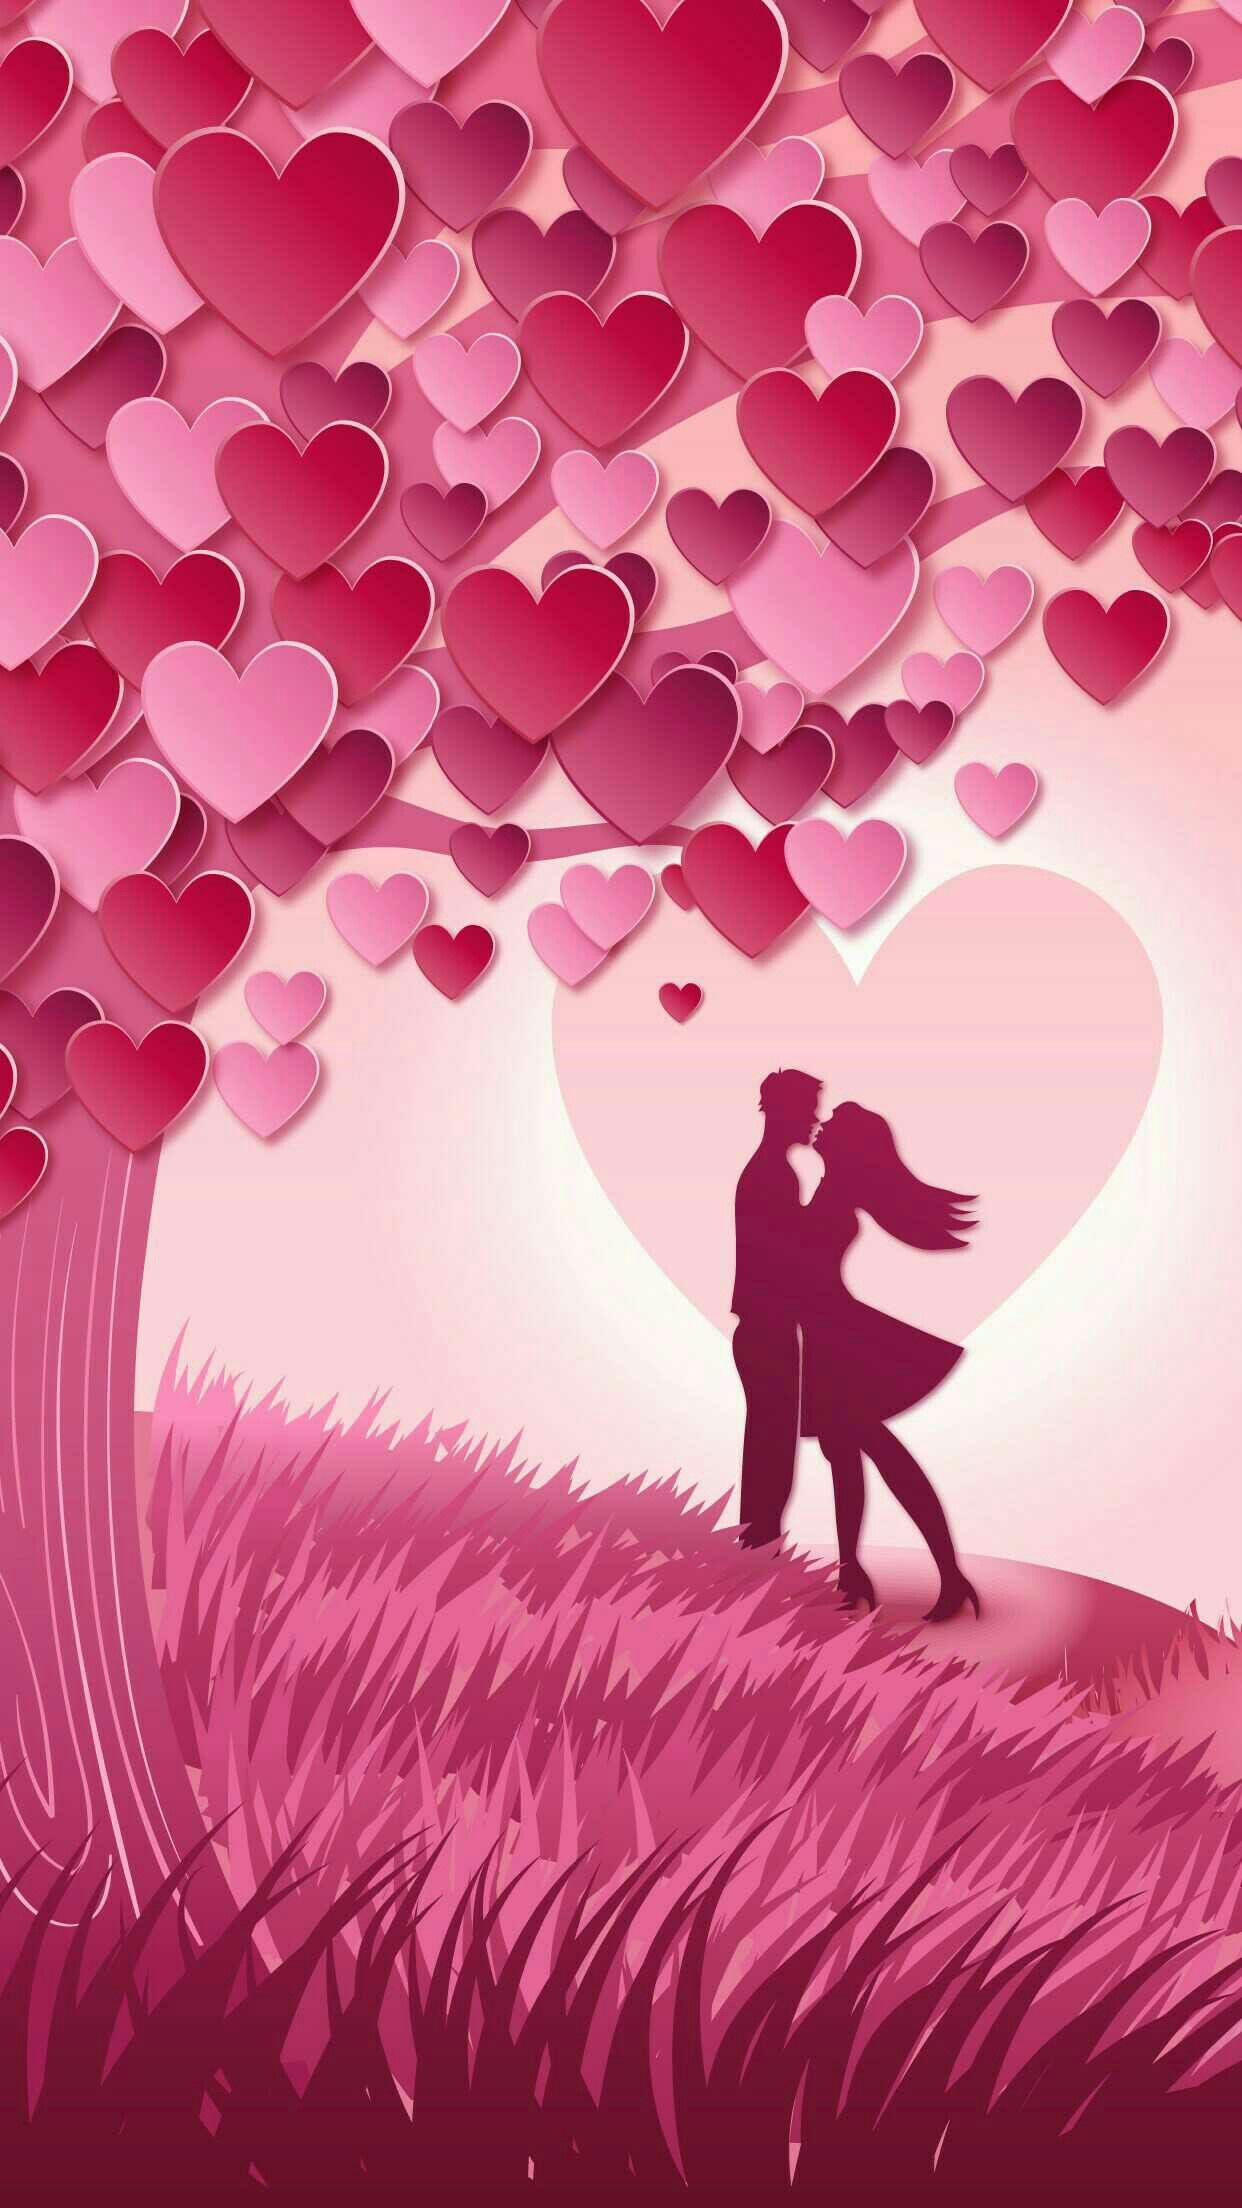 pink heart tree lovers wallpaper | *hearts and roses wallpapers in